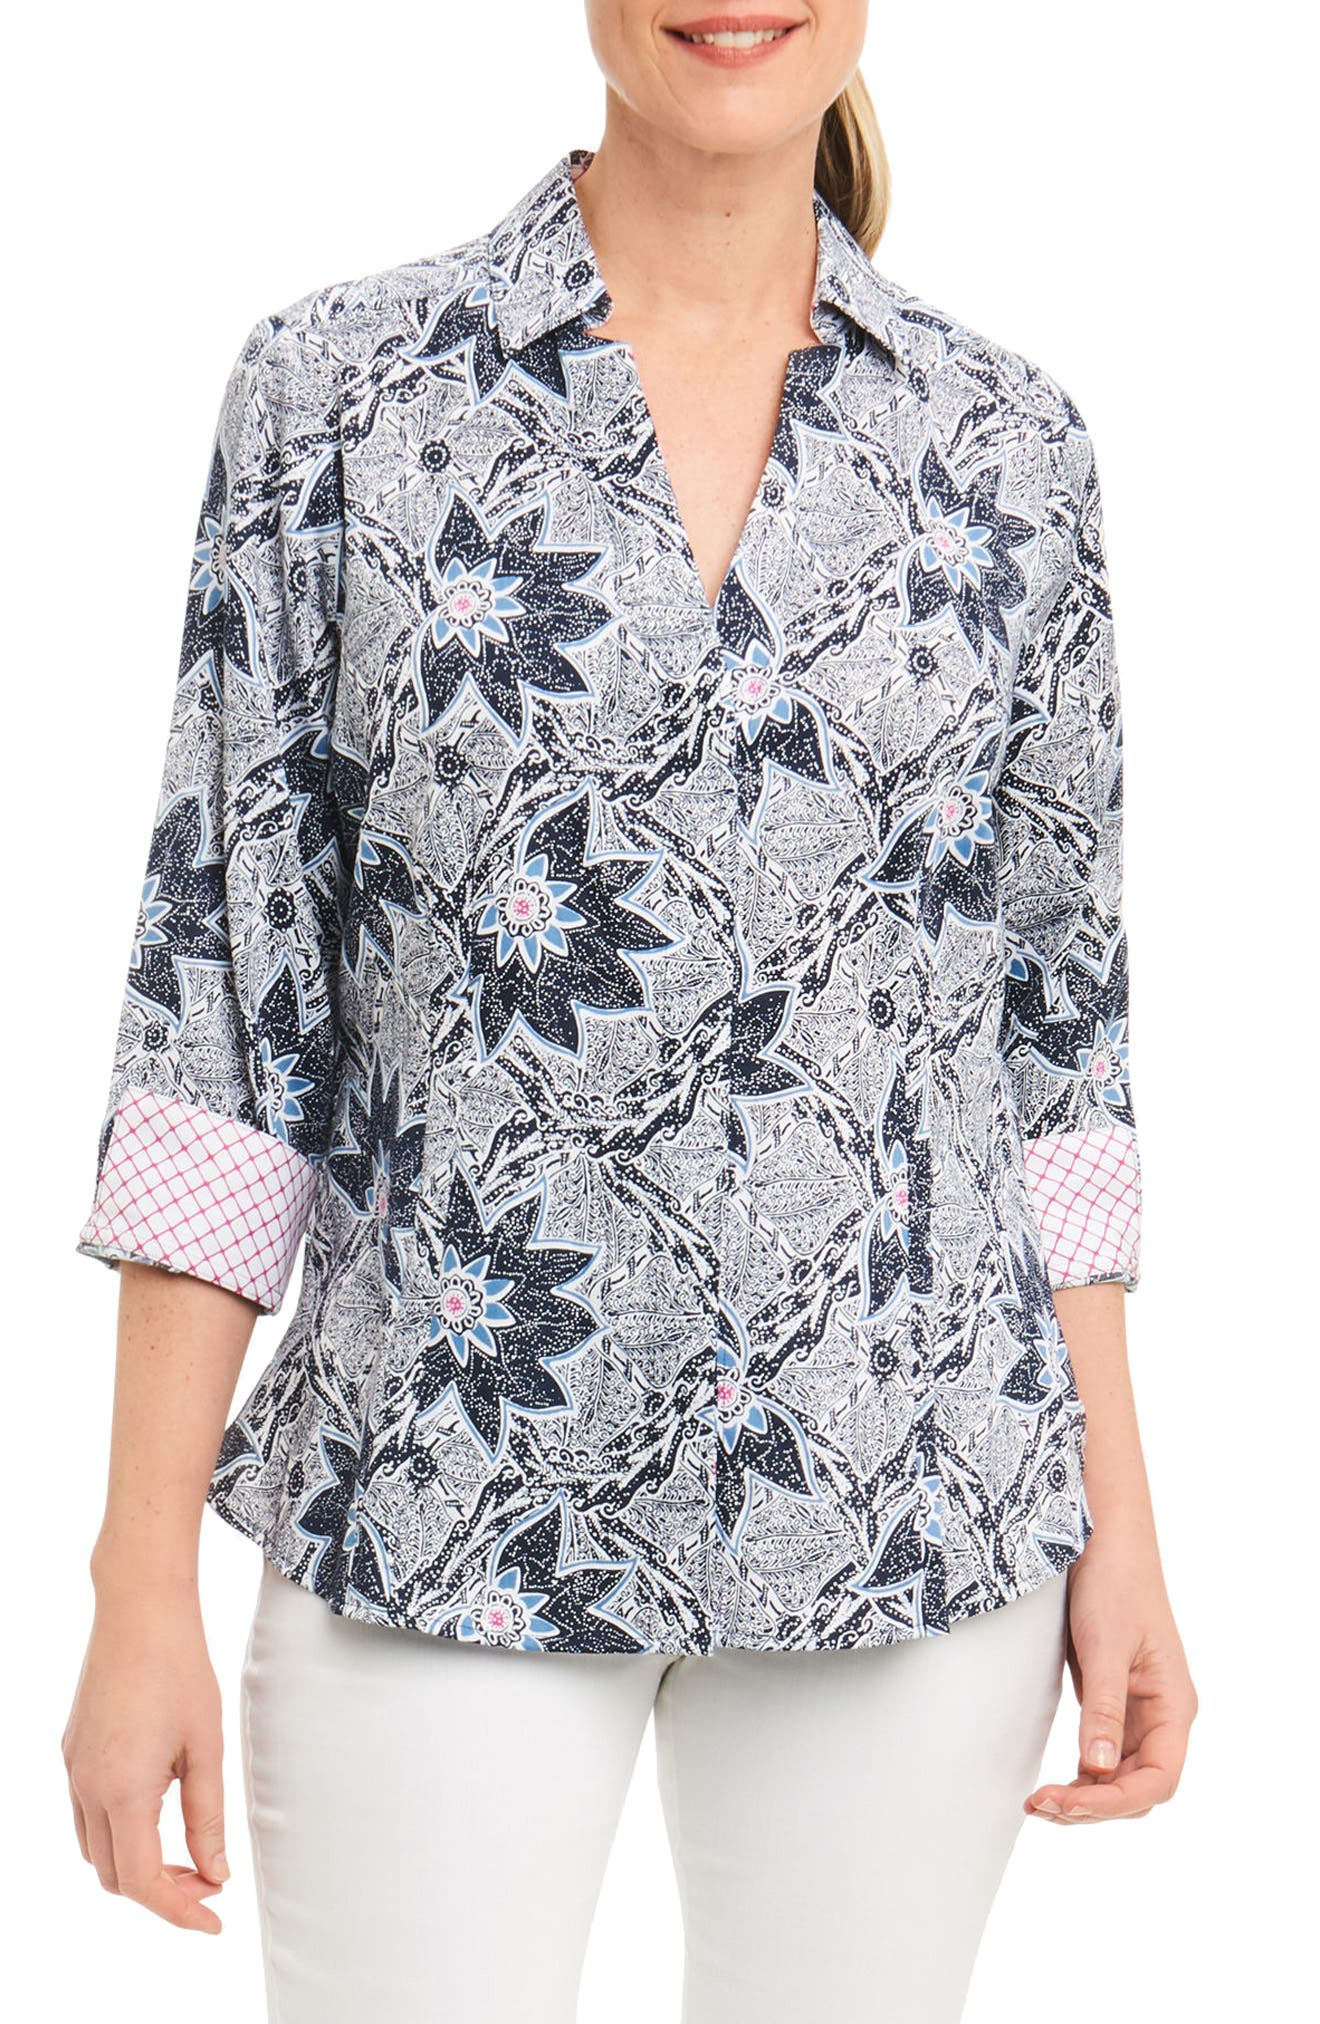 Taylor Summer Floral Shirt,                             Main thumbnail 1, color,                             462